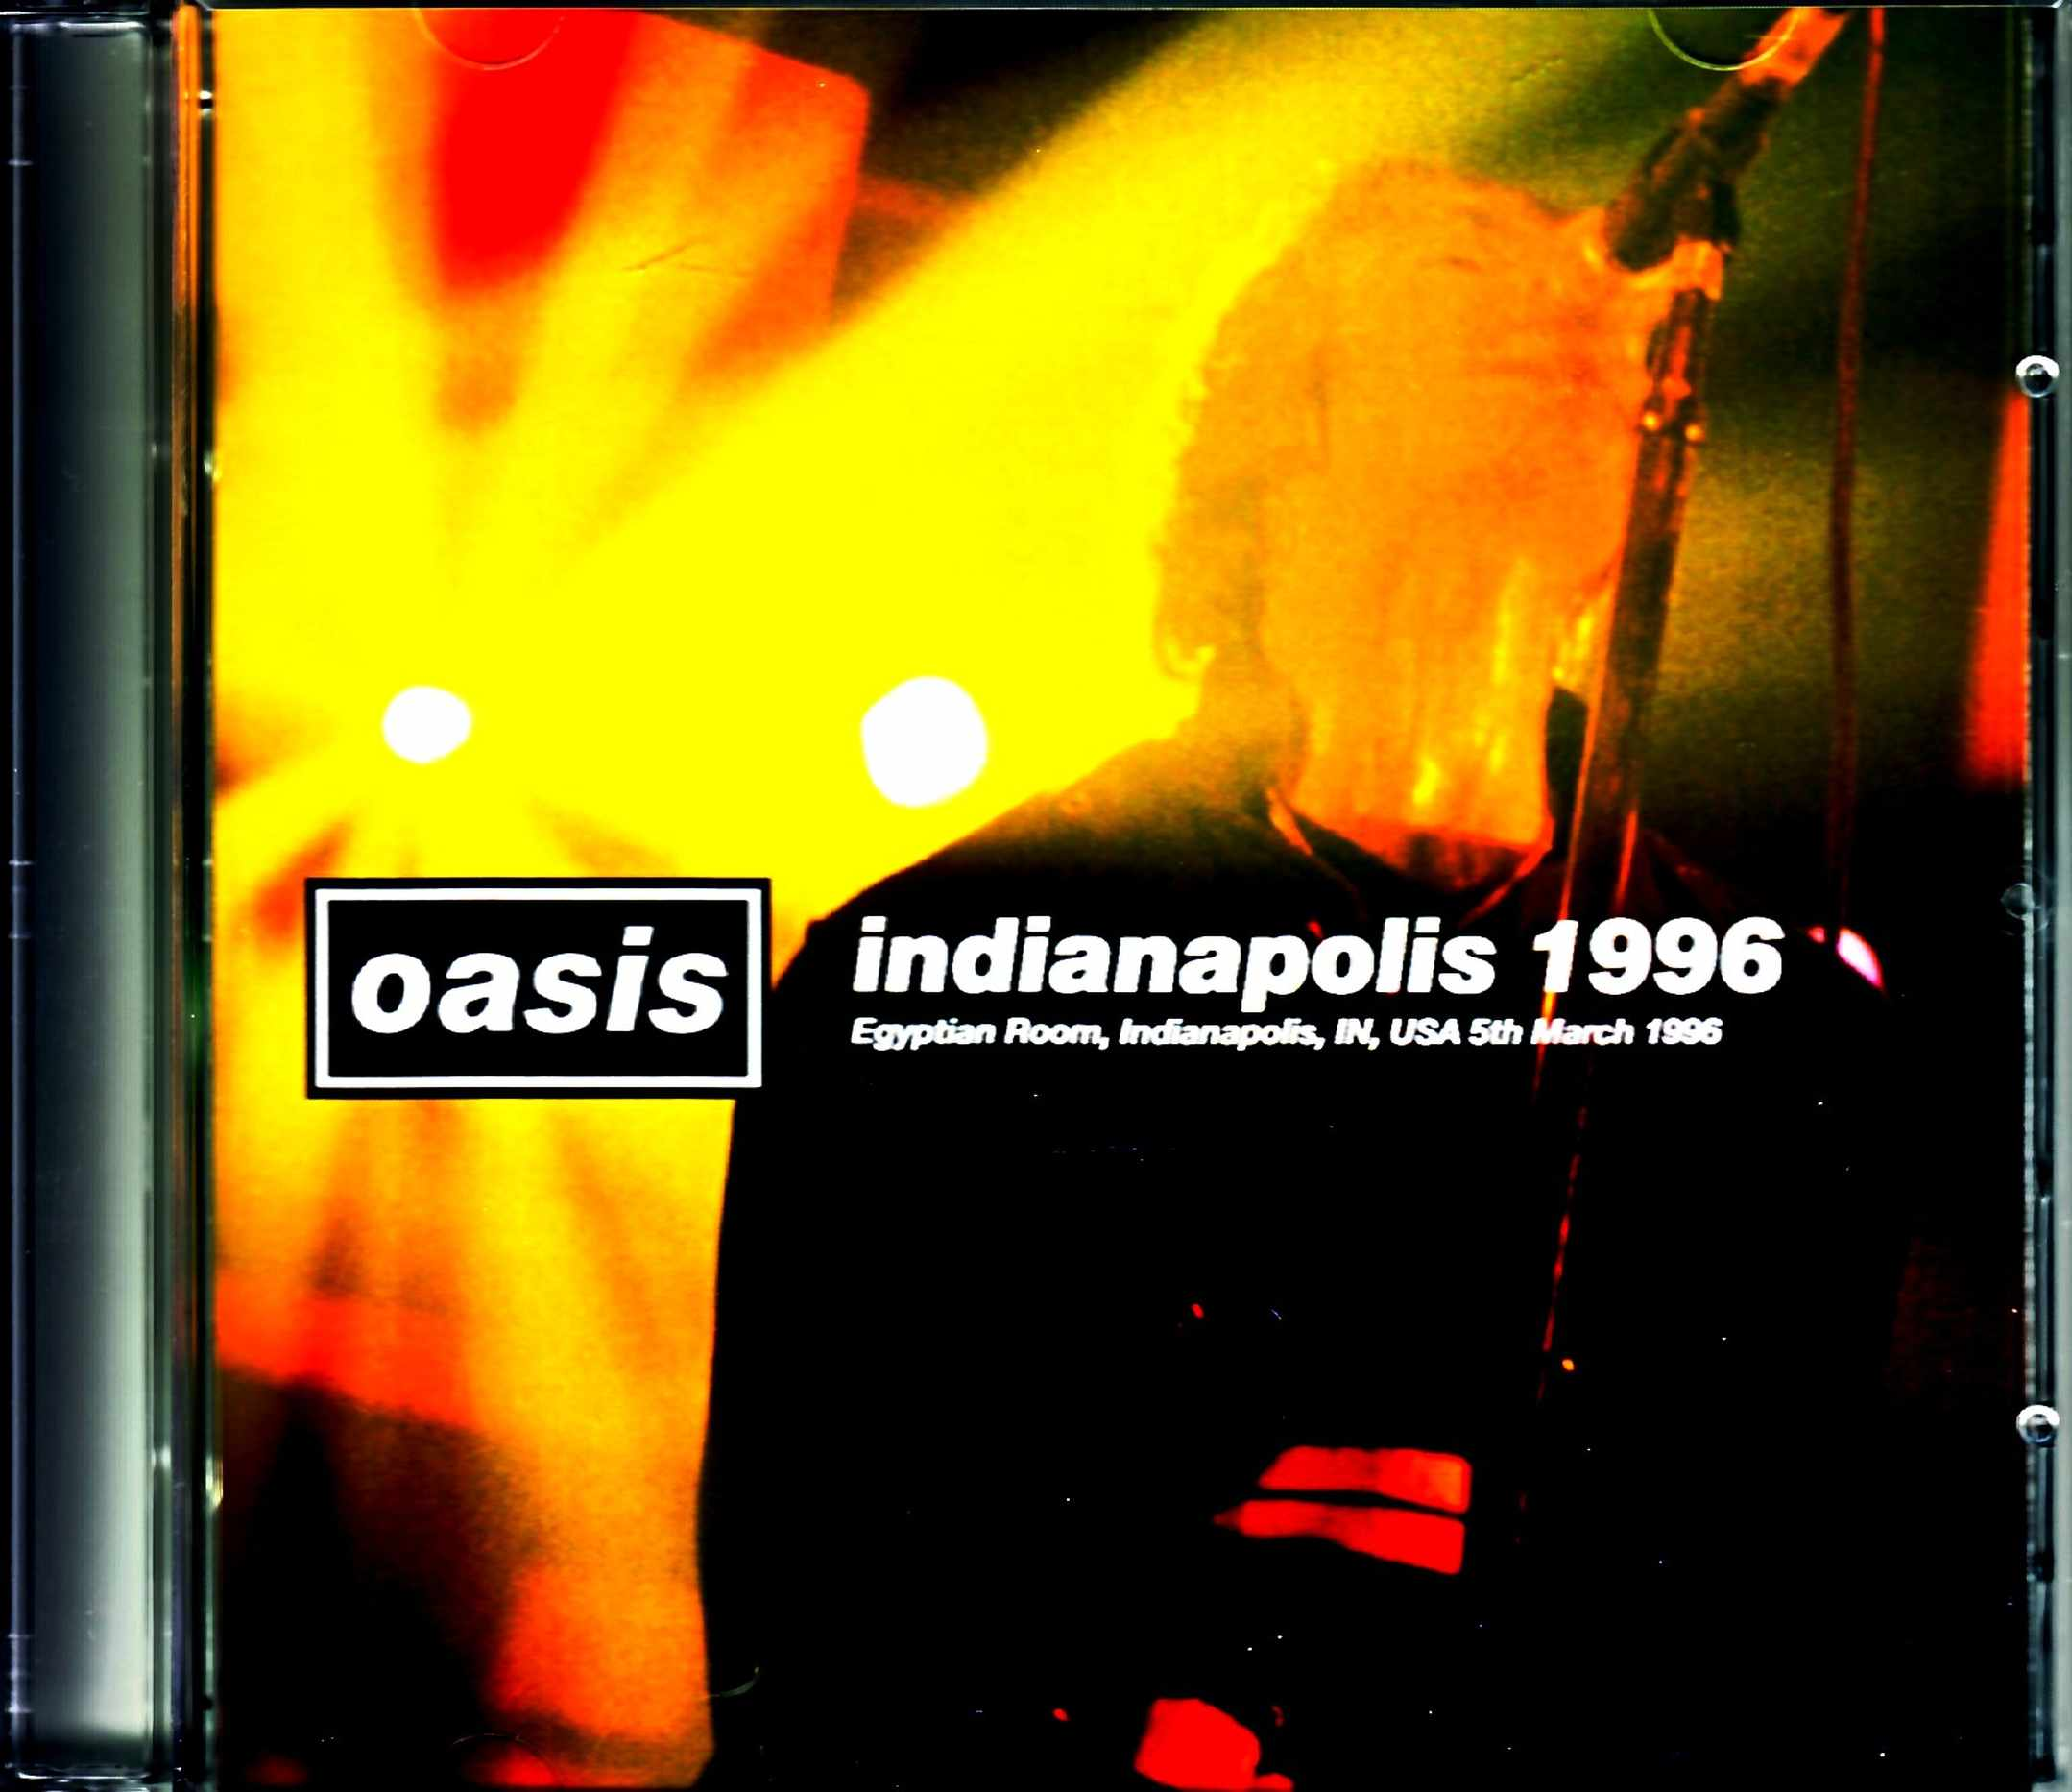 Oasis オアシス/IN,USA 1996